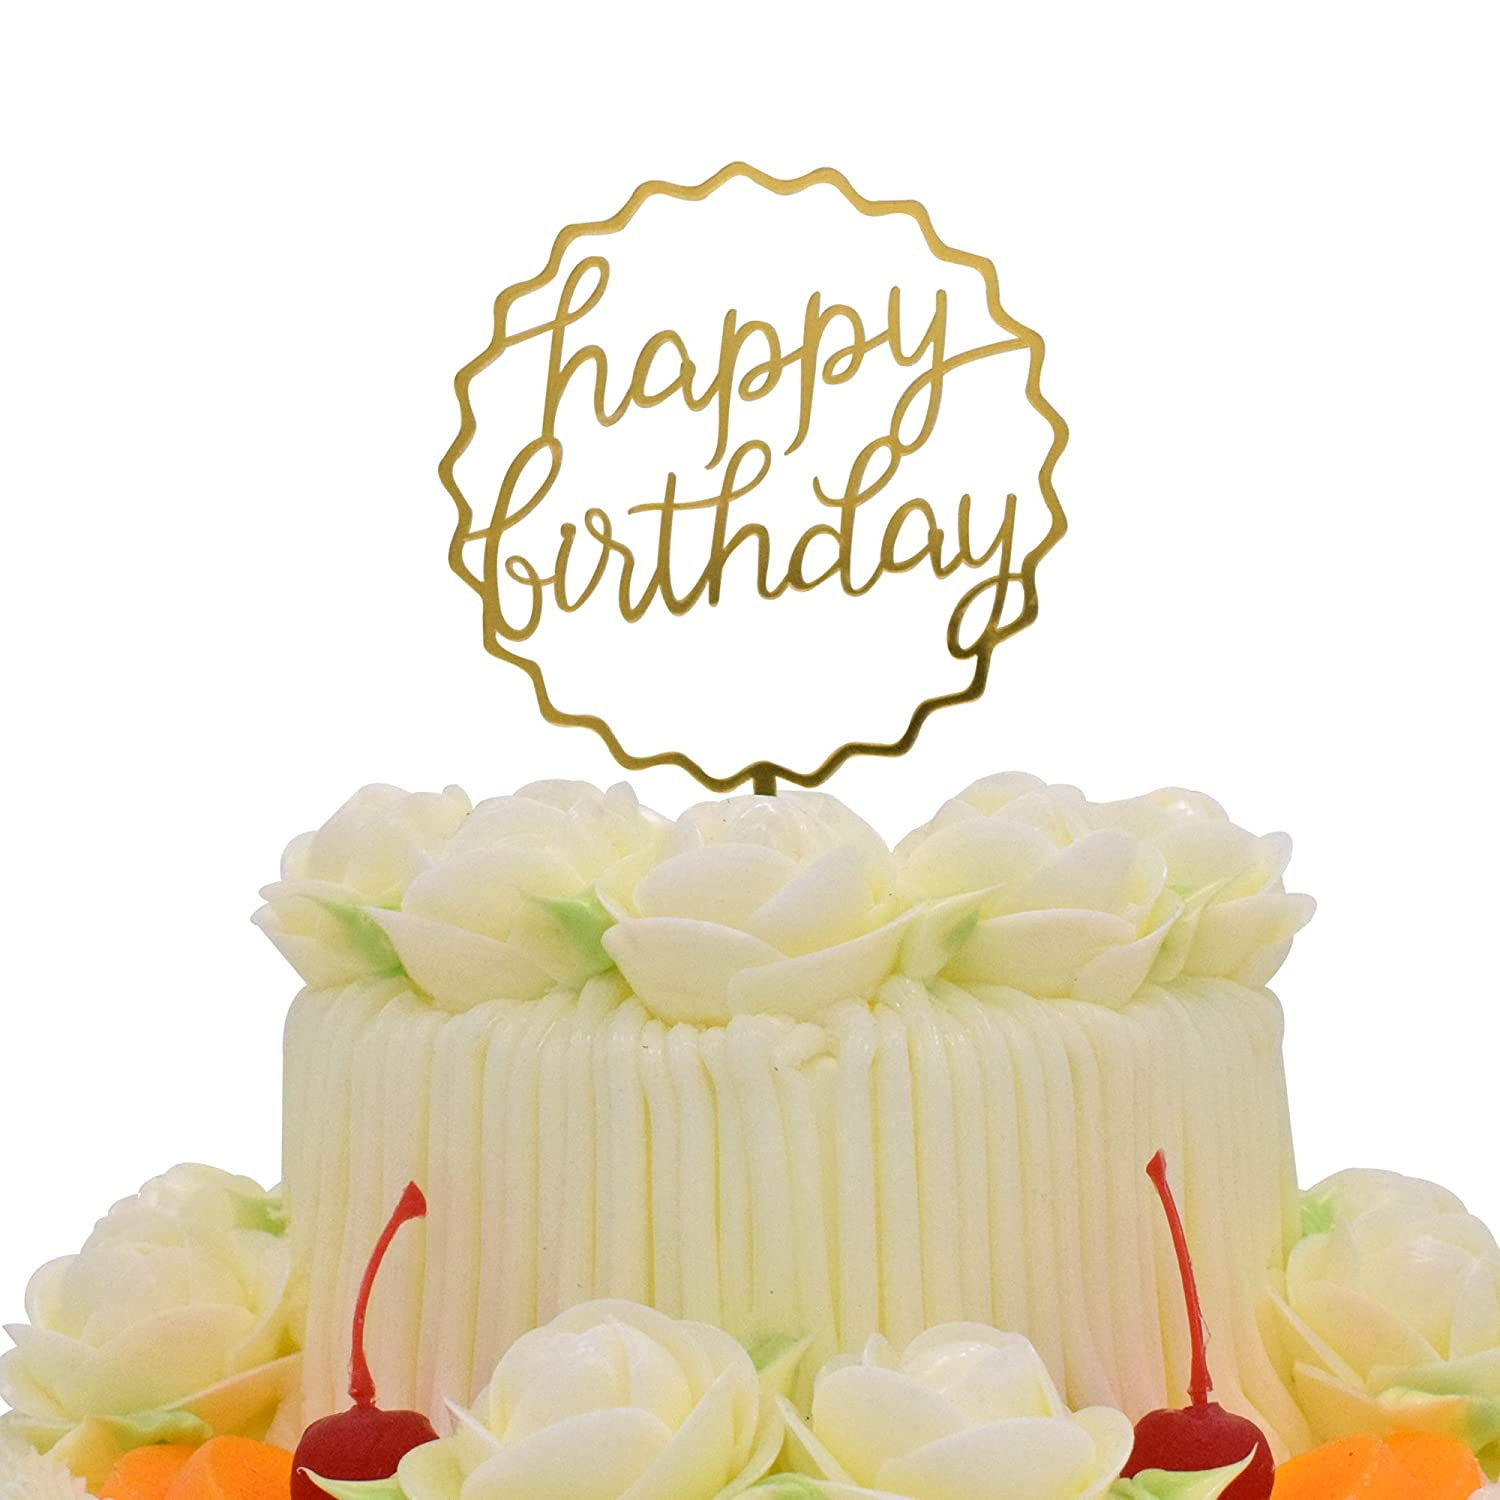 Happy Birthday Cake Topper KOOTIPS Acrylic Gold Twinkle DIY Glitter First Cupcake Smash Candle Alternative Party Handmade Wave